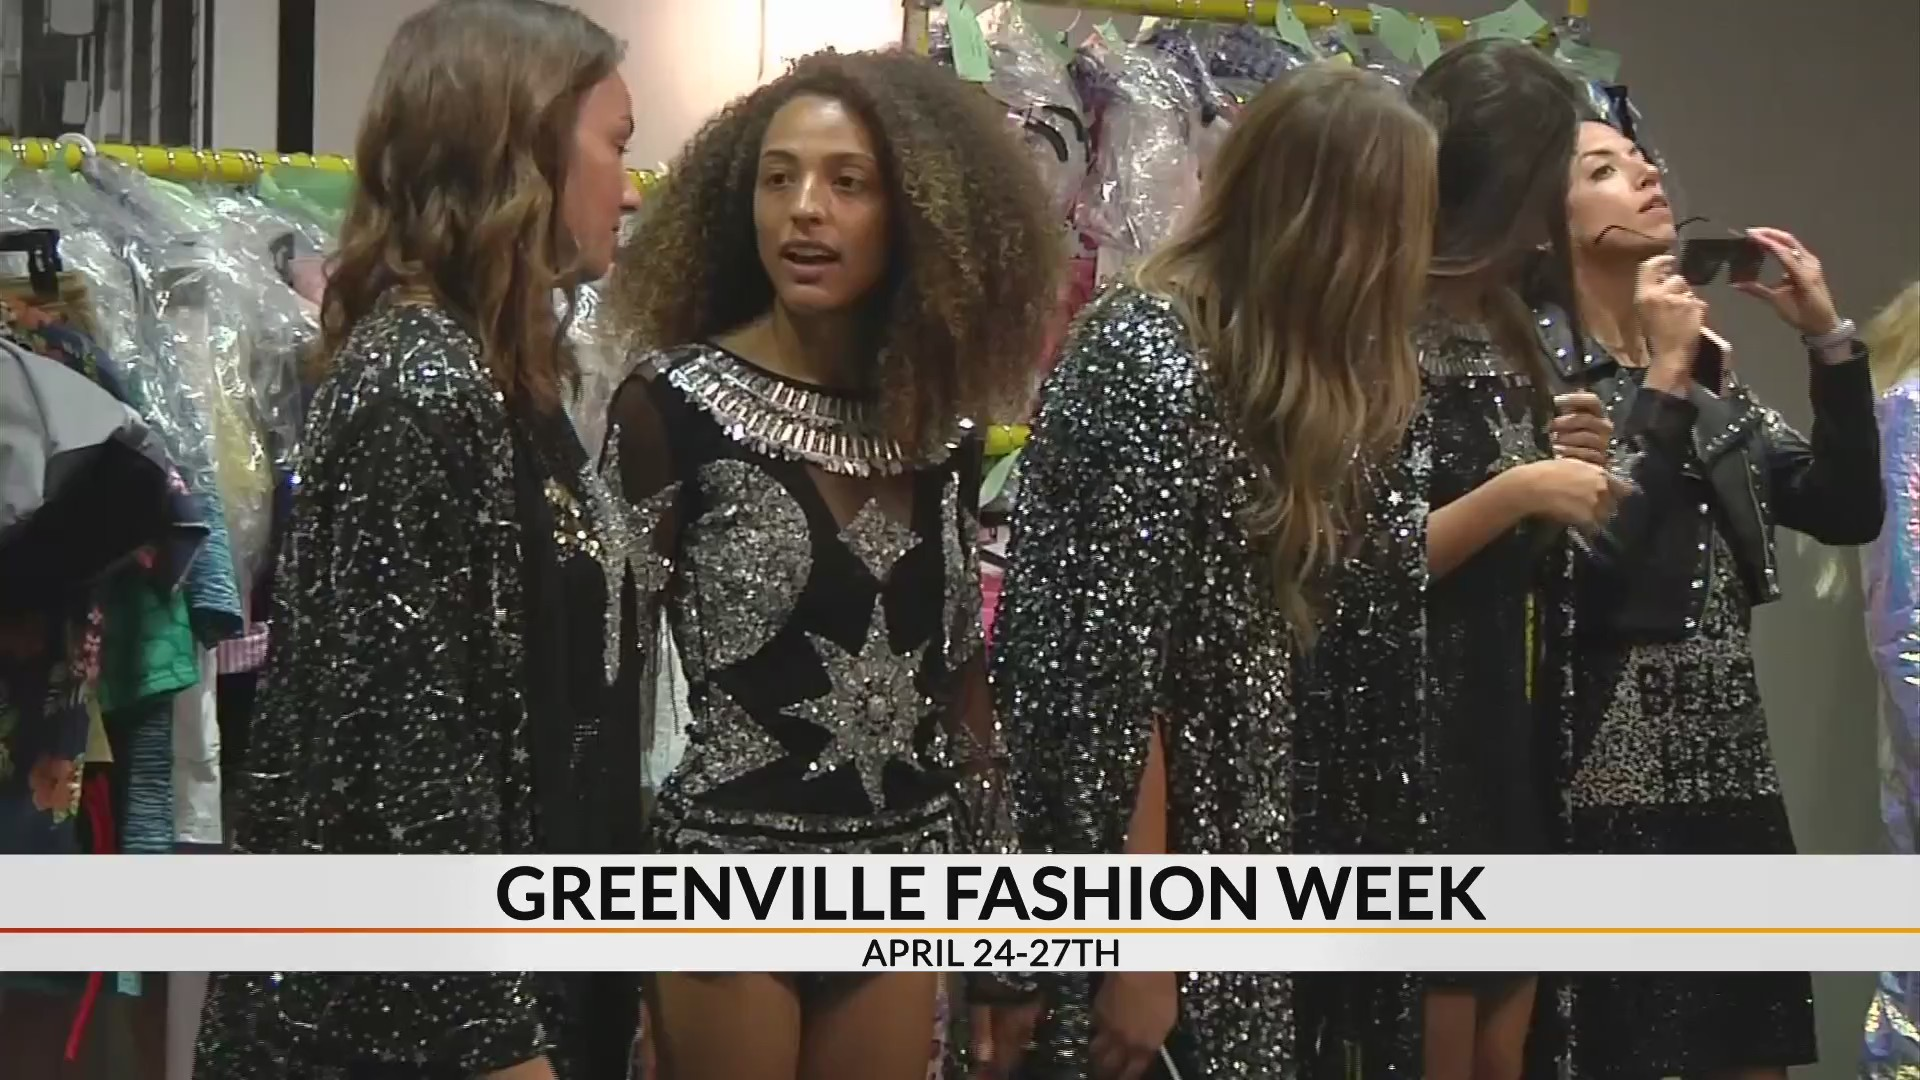 Behind the scenes with celebrity fashion designers at Greenville Fashion Week